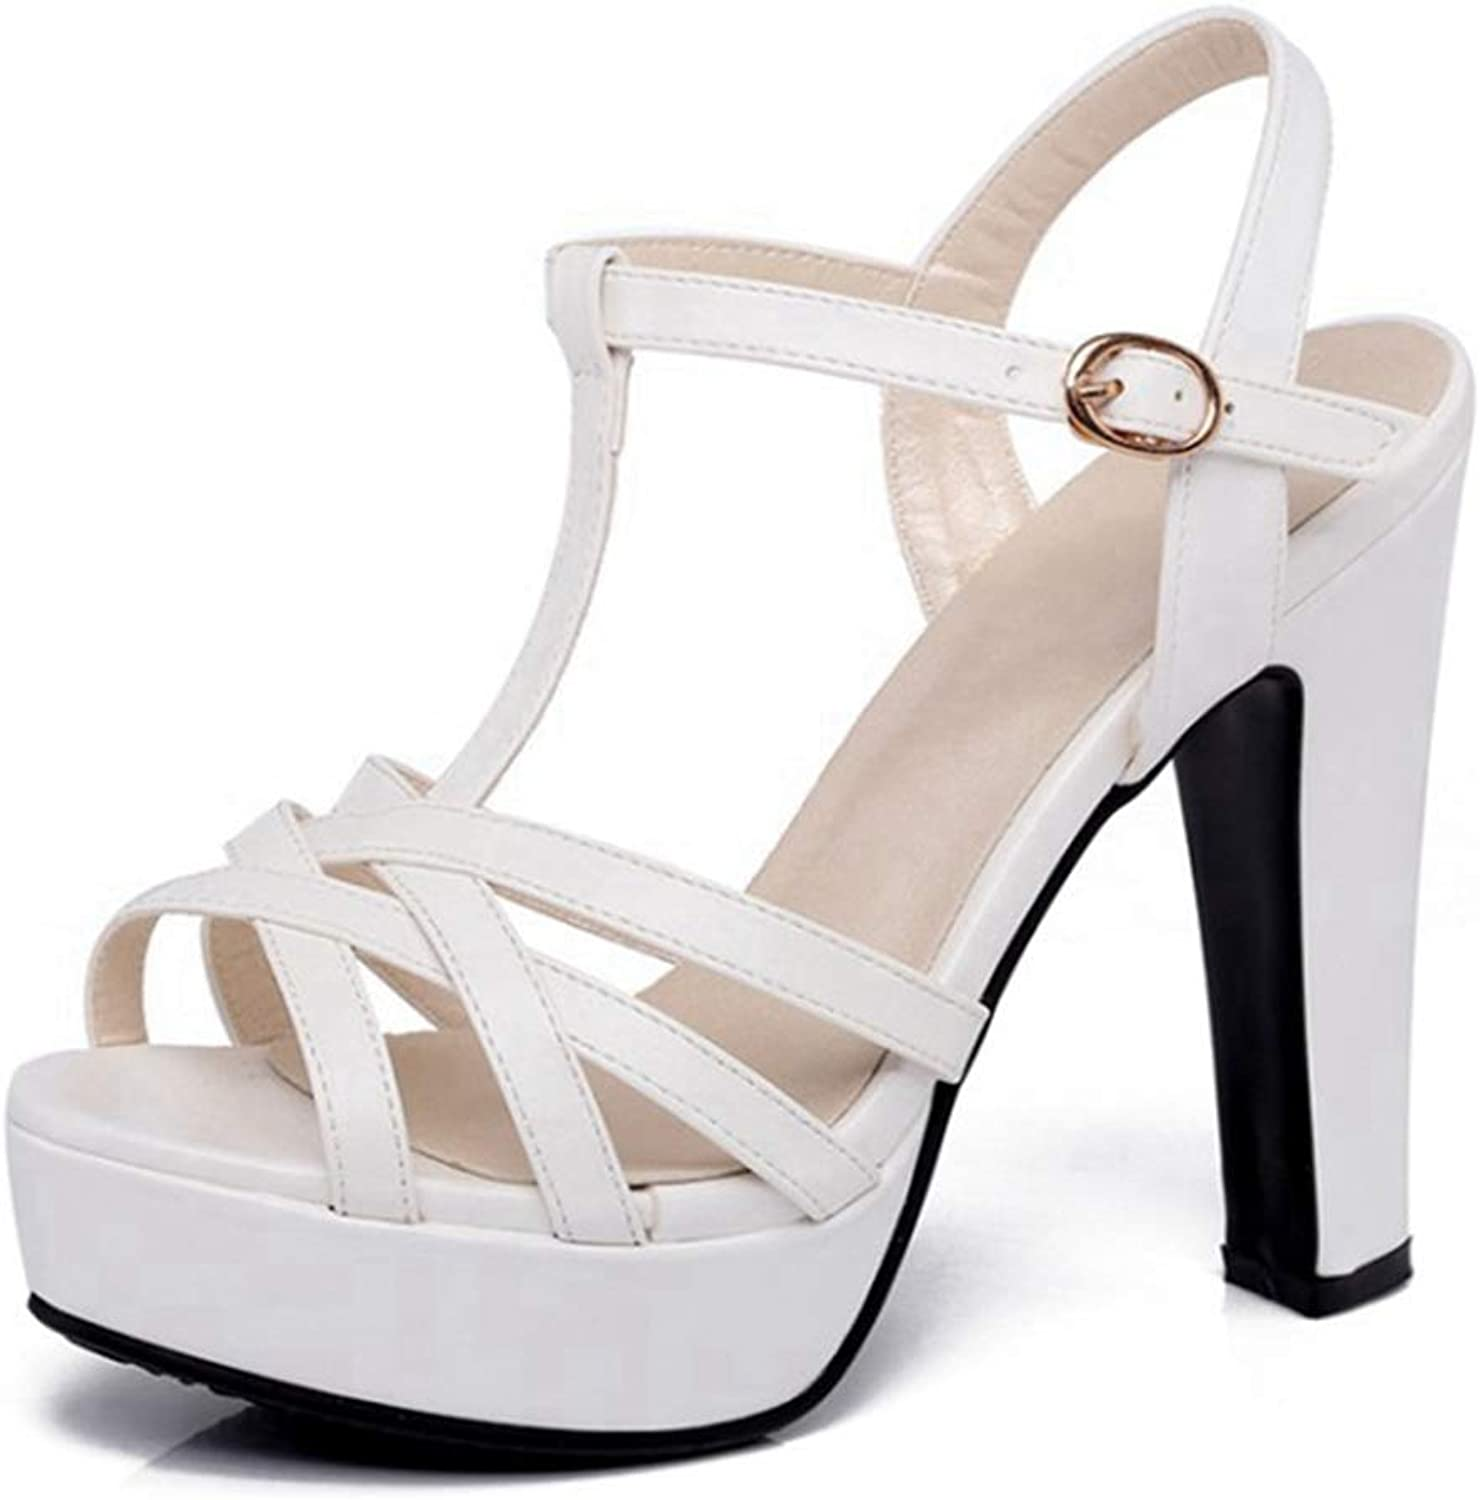 Fullwill Women's Peep Toe Buckle Ankle Strap Chunky High Heel Platform Dress Sandals